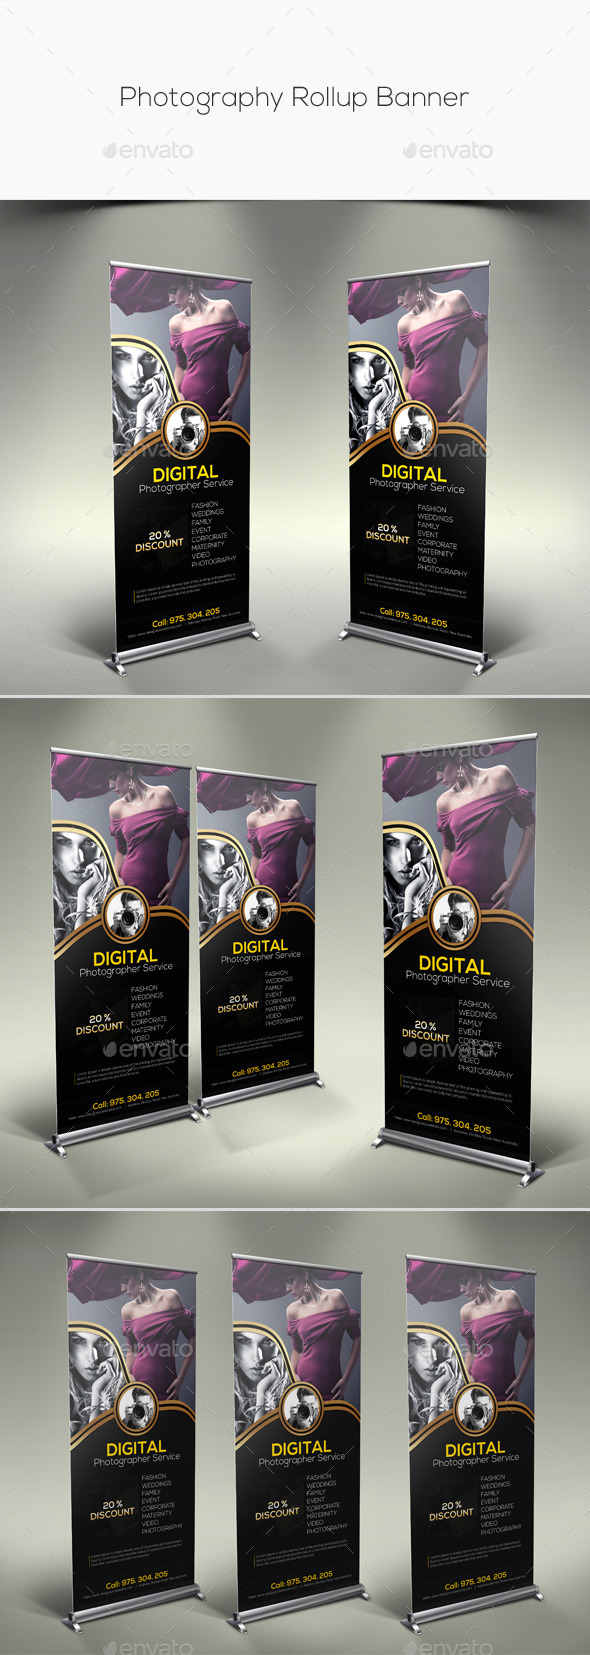 GraphicRiver Photography Rollup Banner 11279831